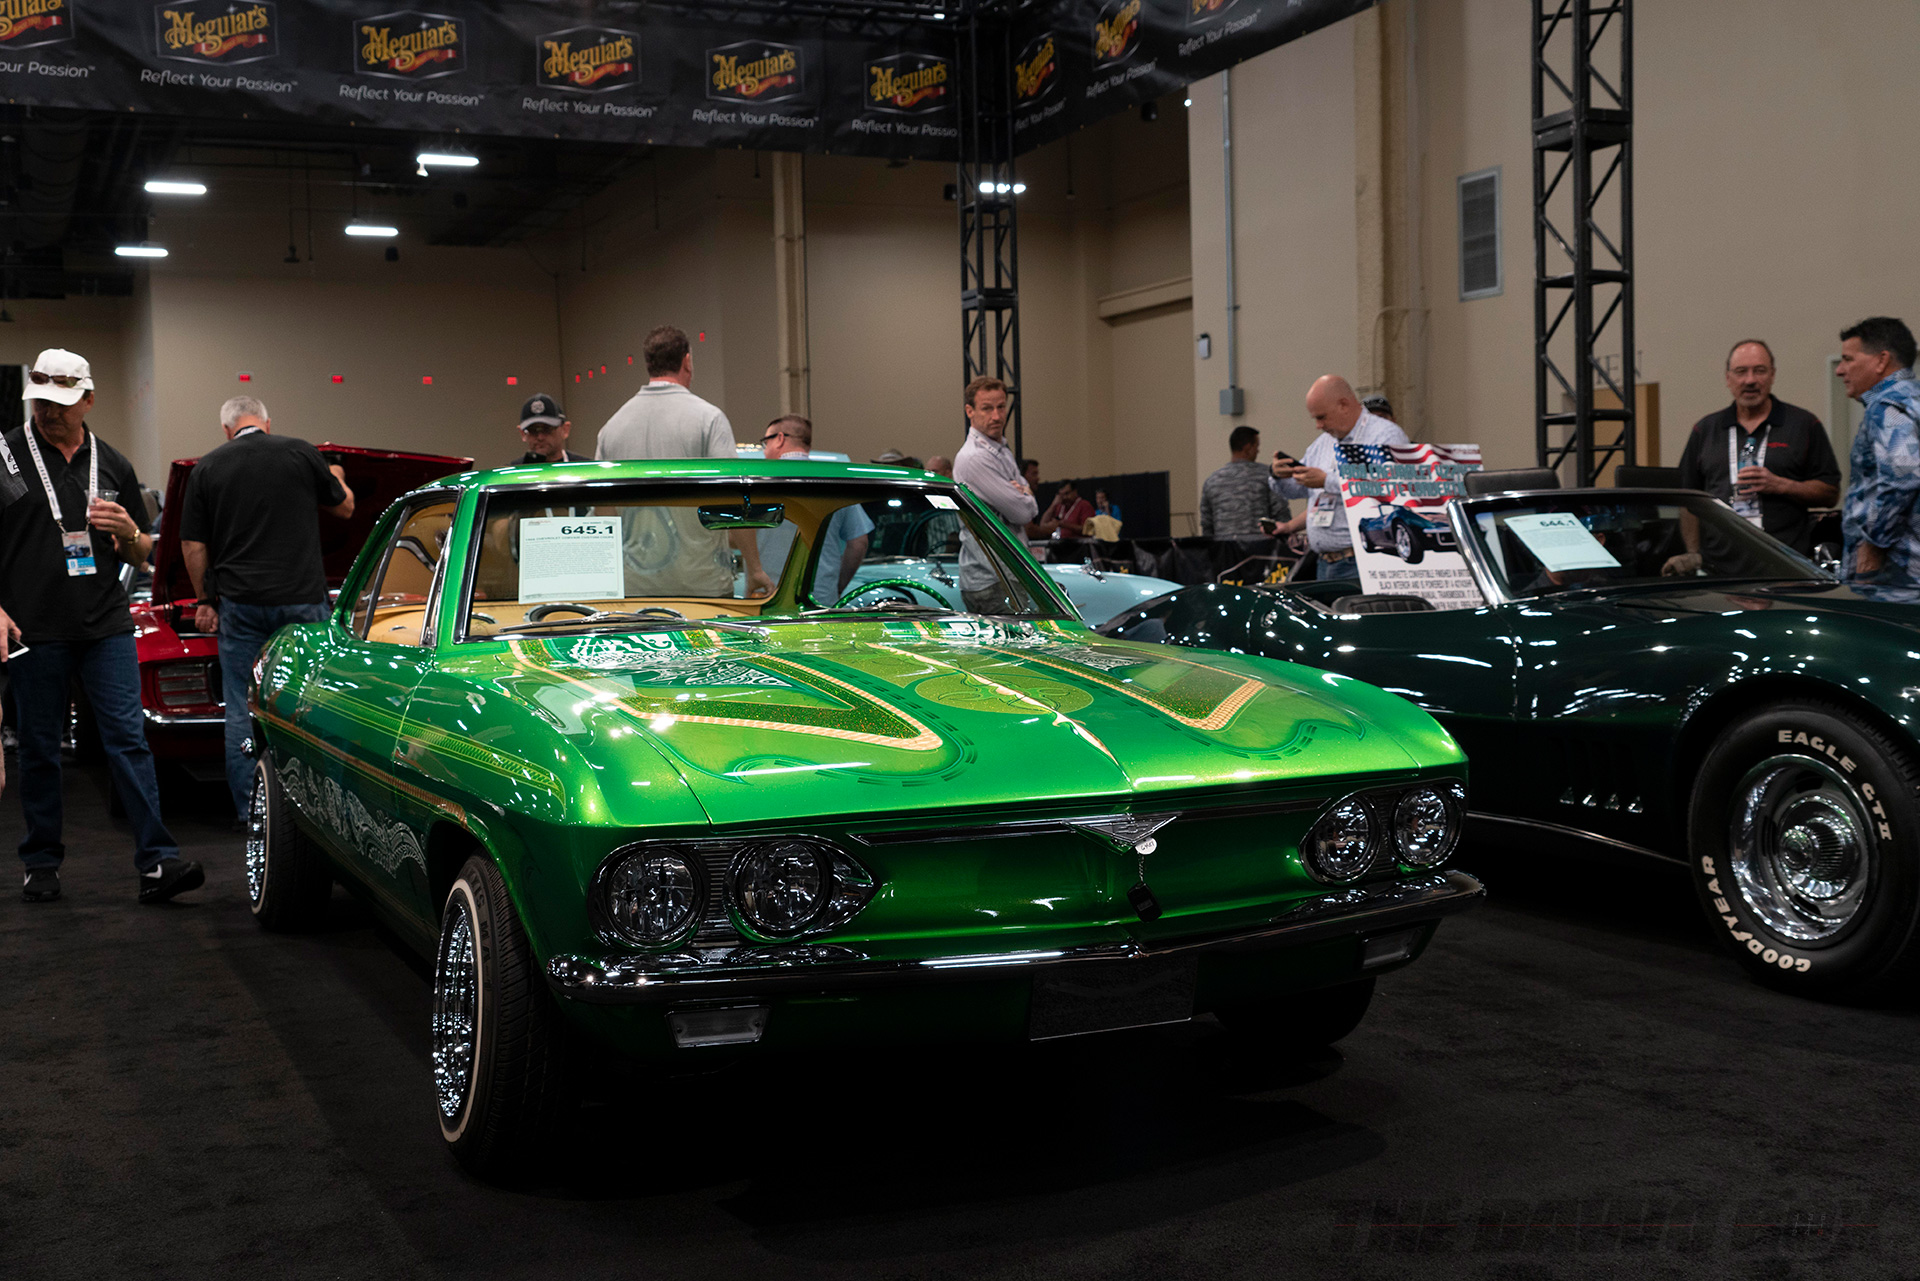 green chevy low  rider at Barrett-Jackson Auction